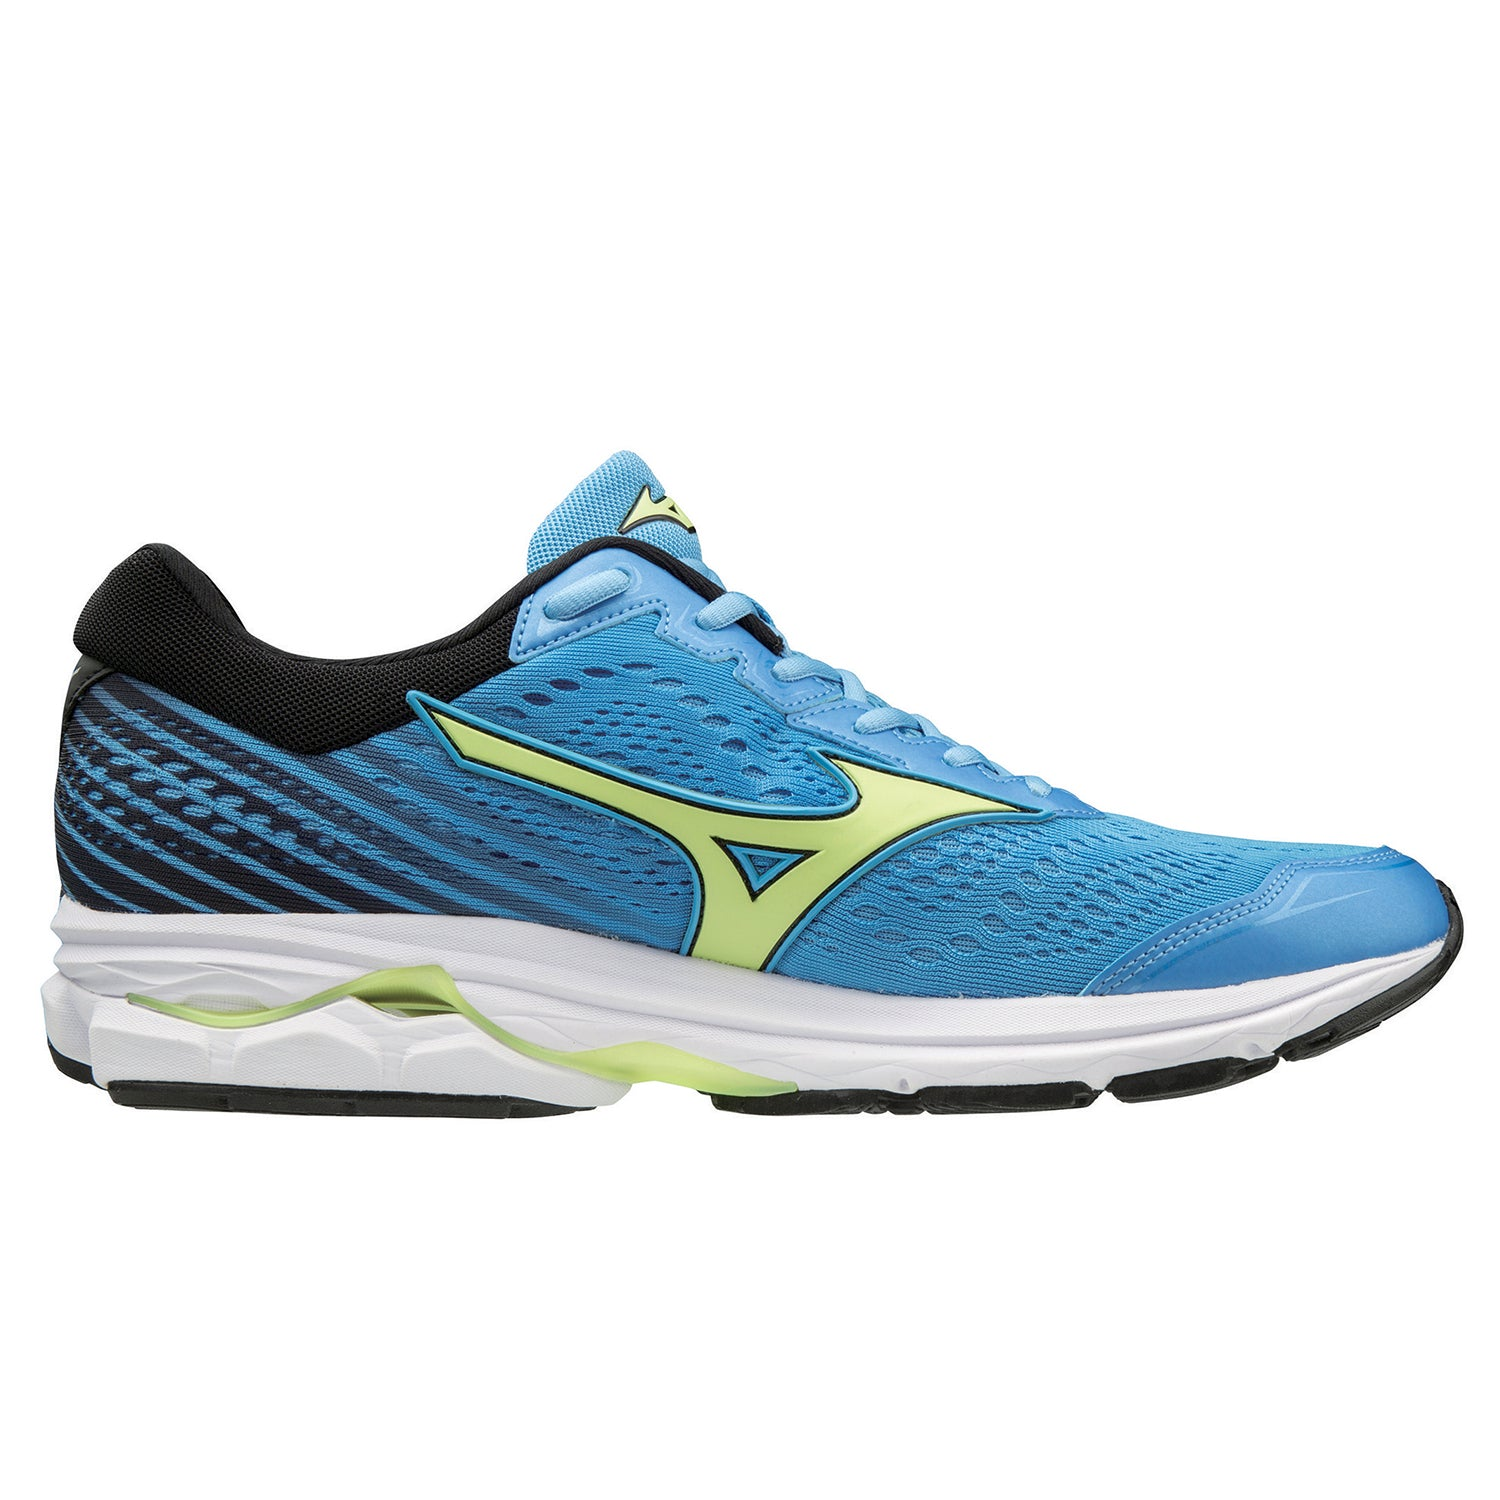 mizuno wave rider 21 foot locker junio kilometer